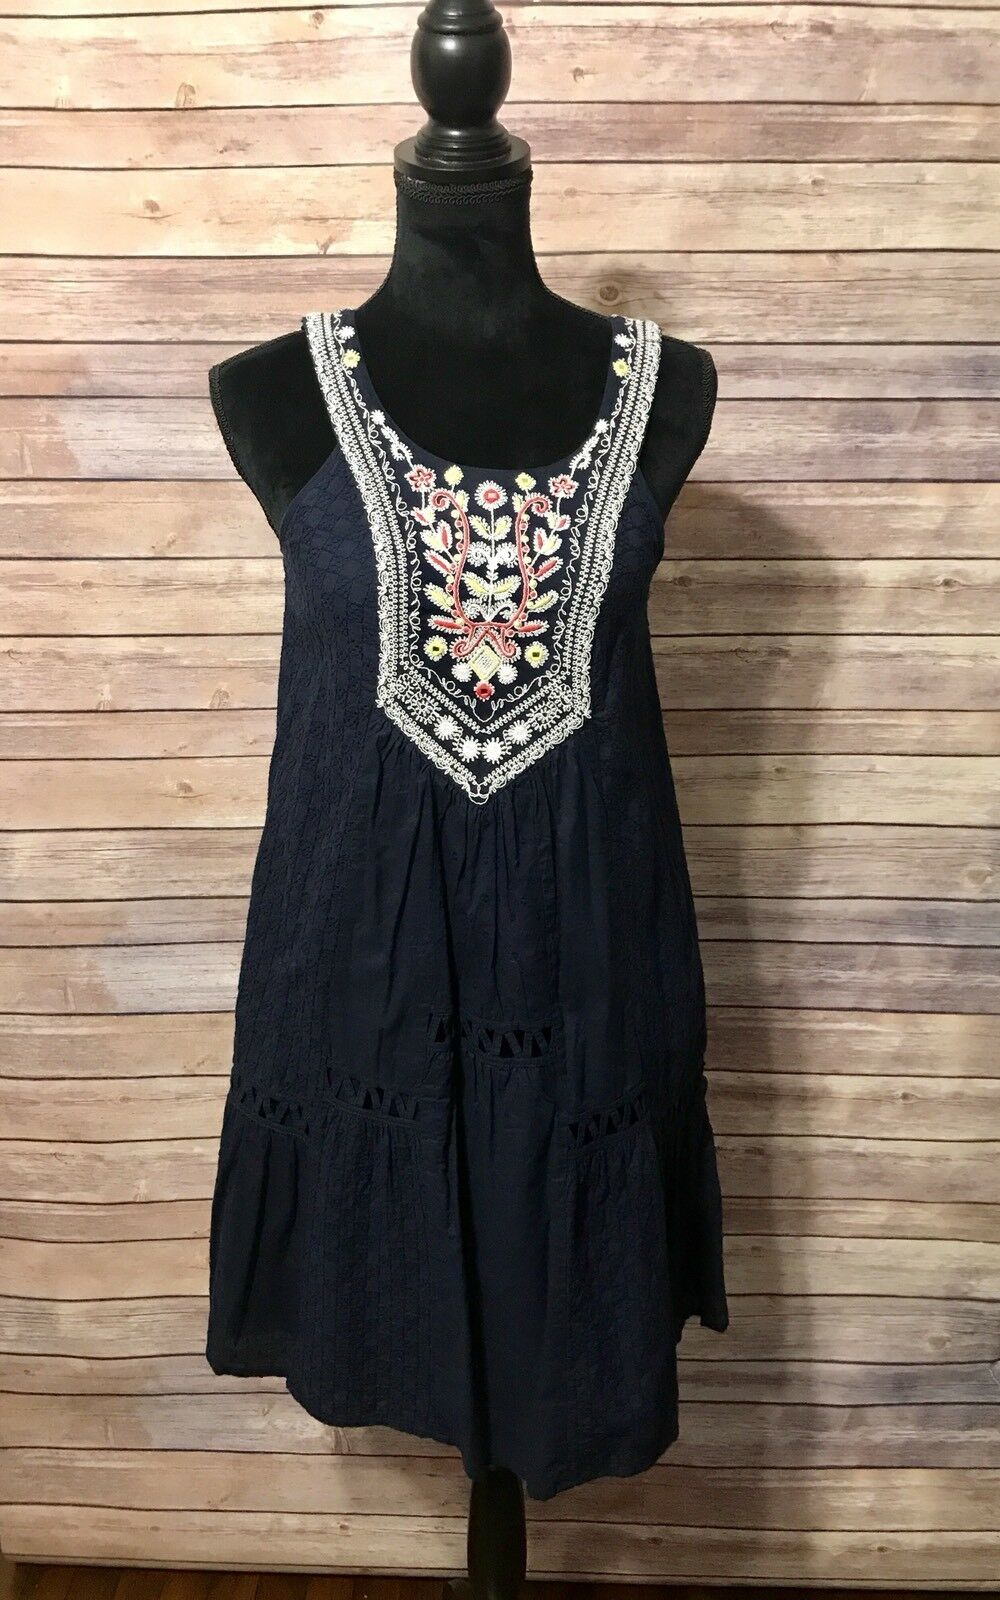 7b5fdc22a76028 Anthropologie Maeve Embroided Dress....SZ 0 Blau nohmhv3231-Kleider ...